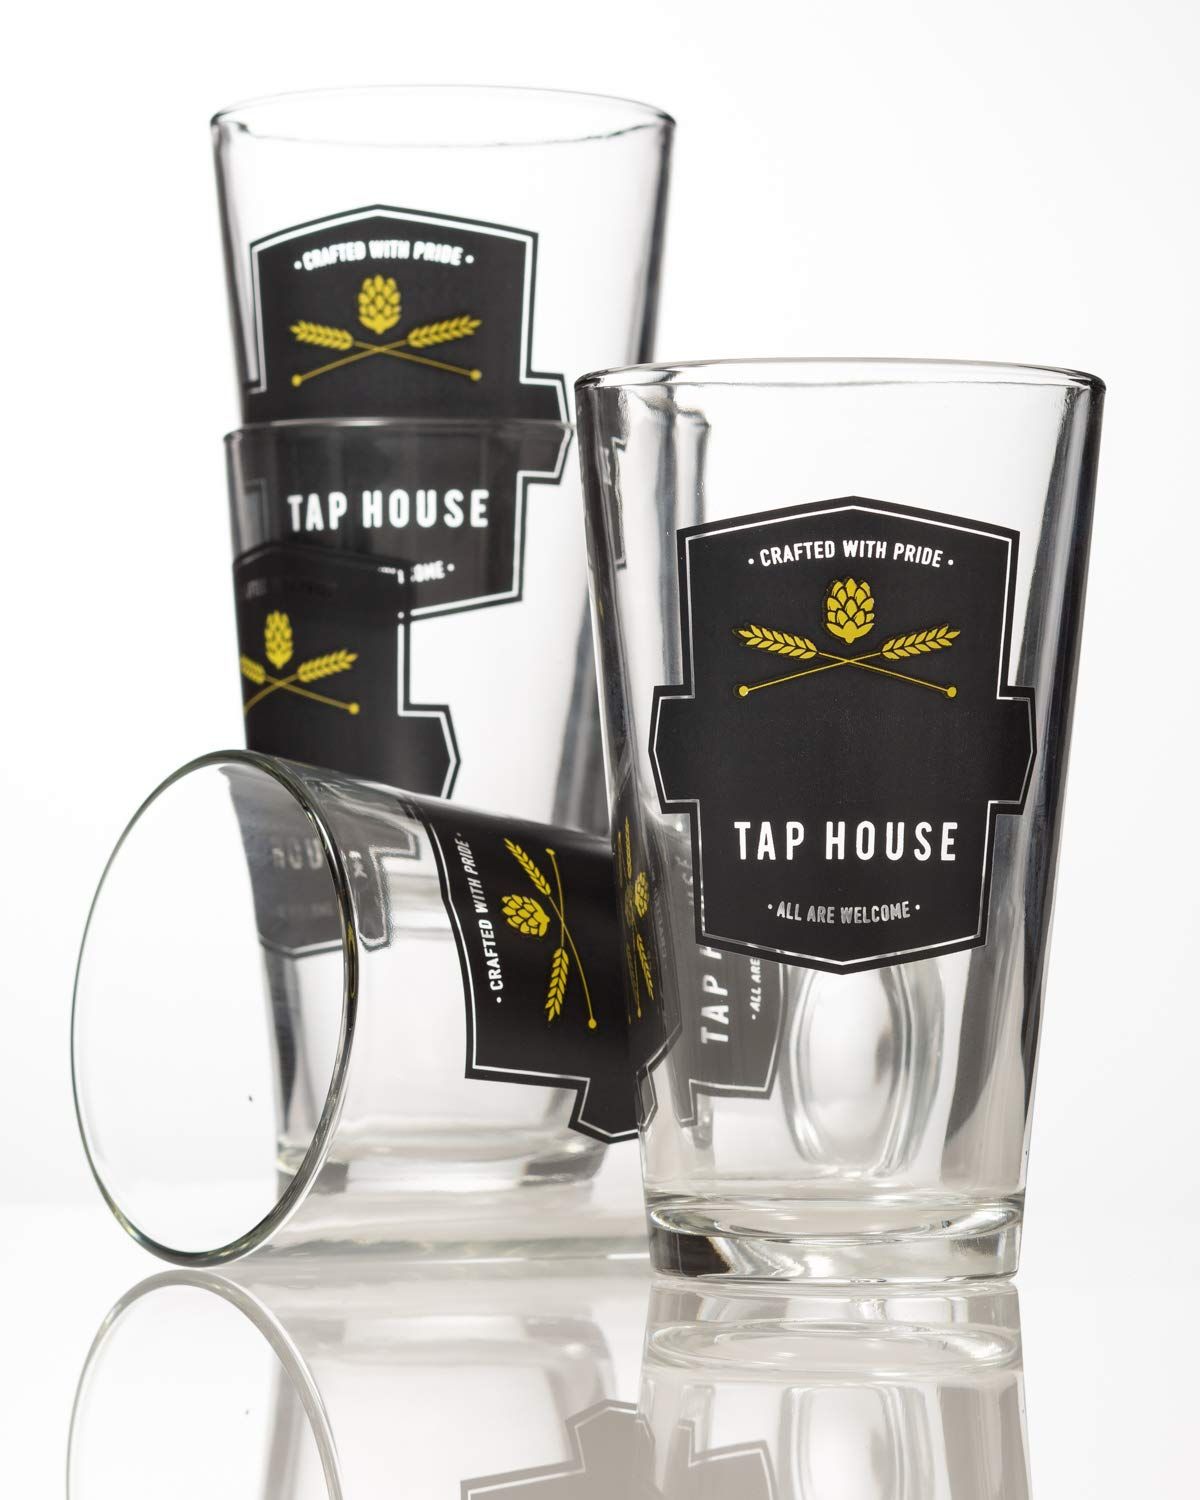 GiftTree Tap House Custom Beer Glasses | Set of 4 Pint Glasses made by Libbey Glass | Perfect Present for Housewarming, Wedding, Groomsmen, Father's Day, Birthday and Holidays by GiftTree (Image #5)